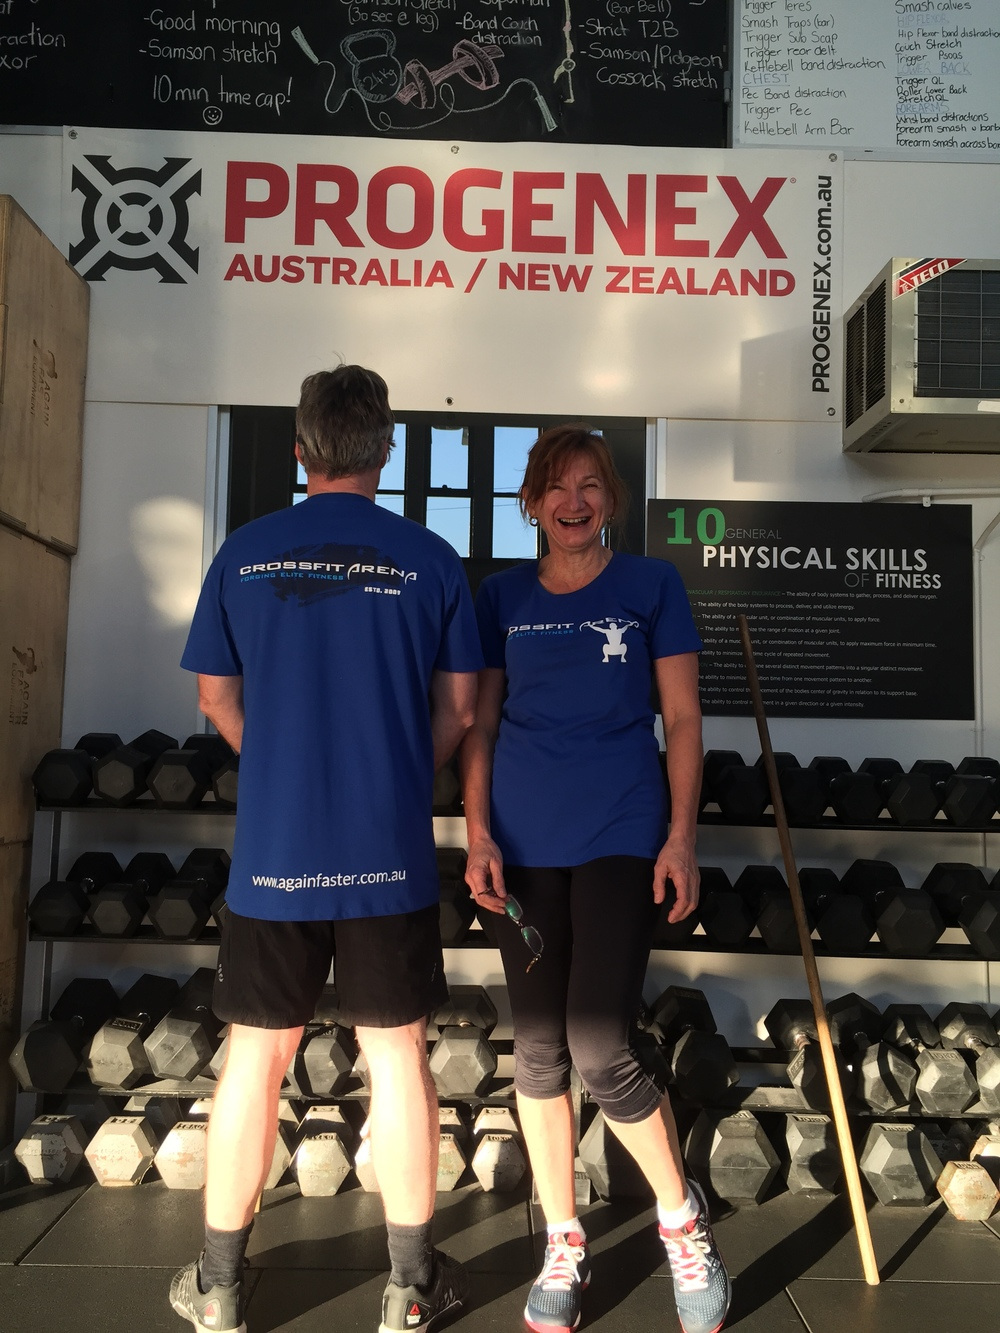 Our new CrossFit Arena T-shirts have arrived. Thank you to our two lovely models, Darren and Suzanne Craig.